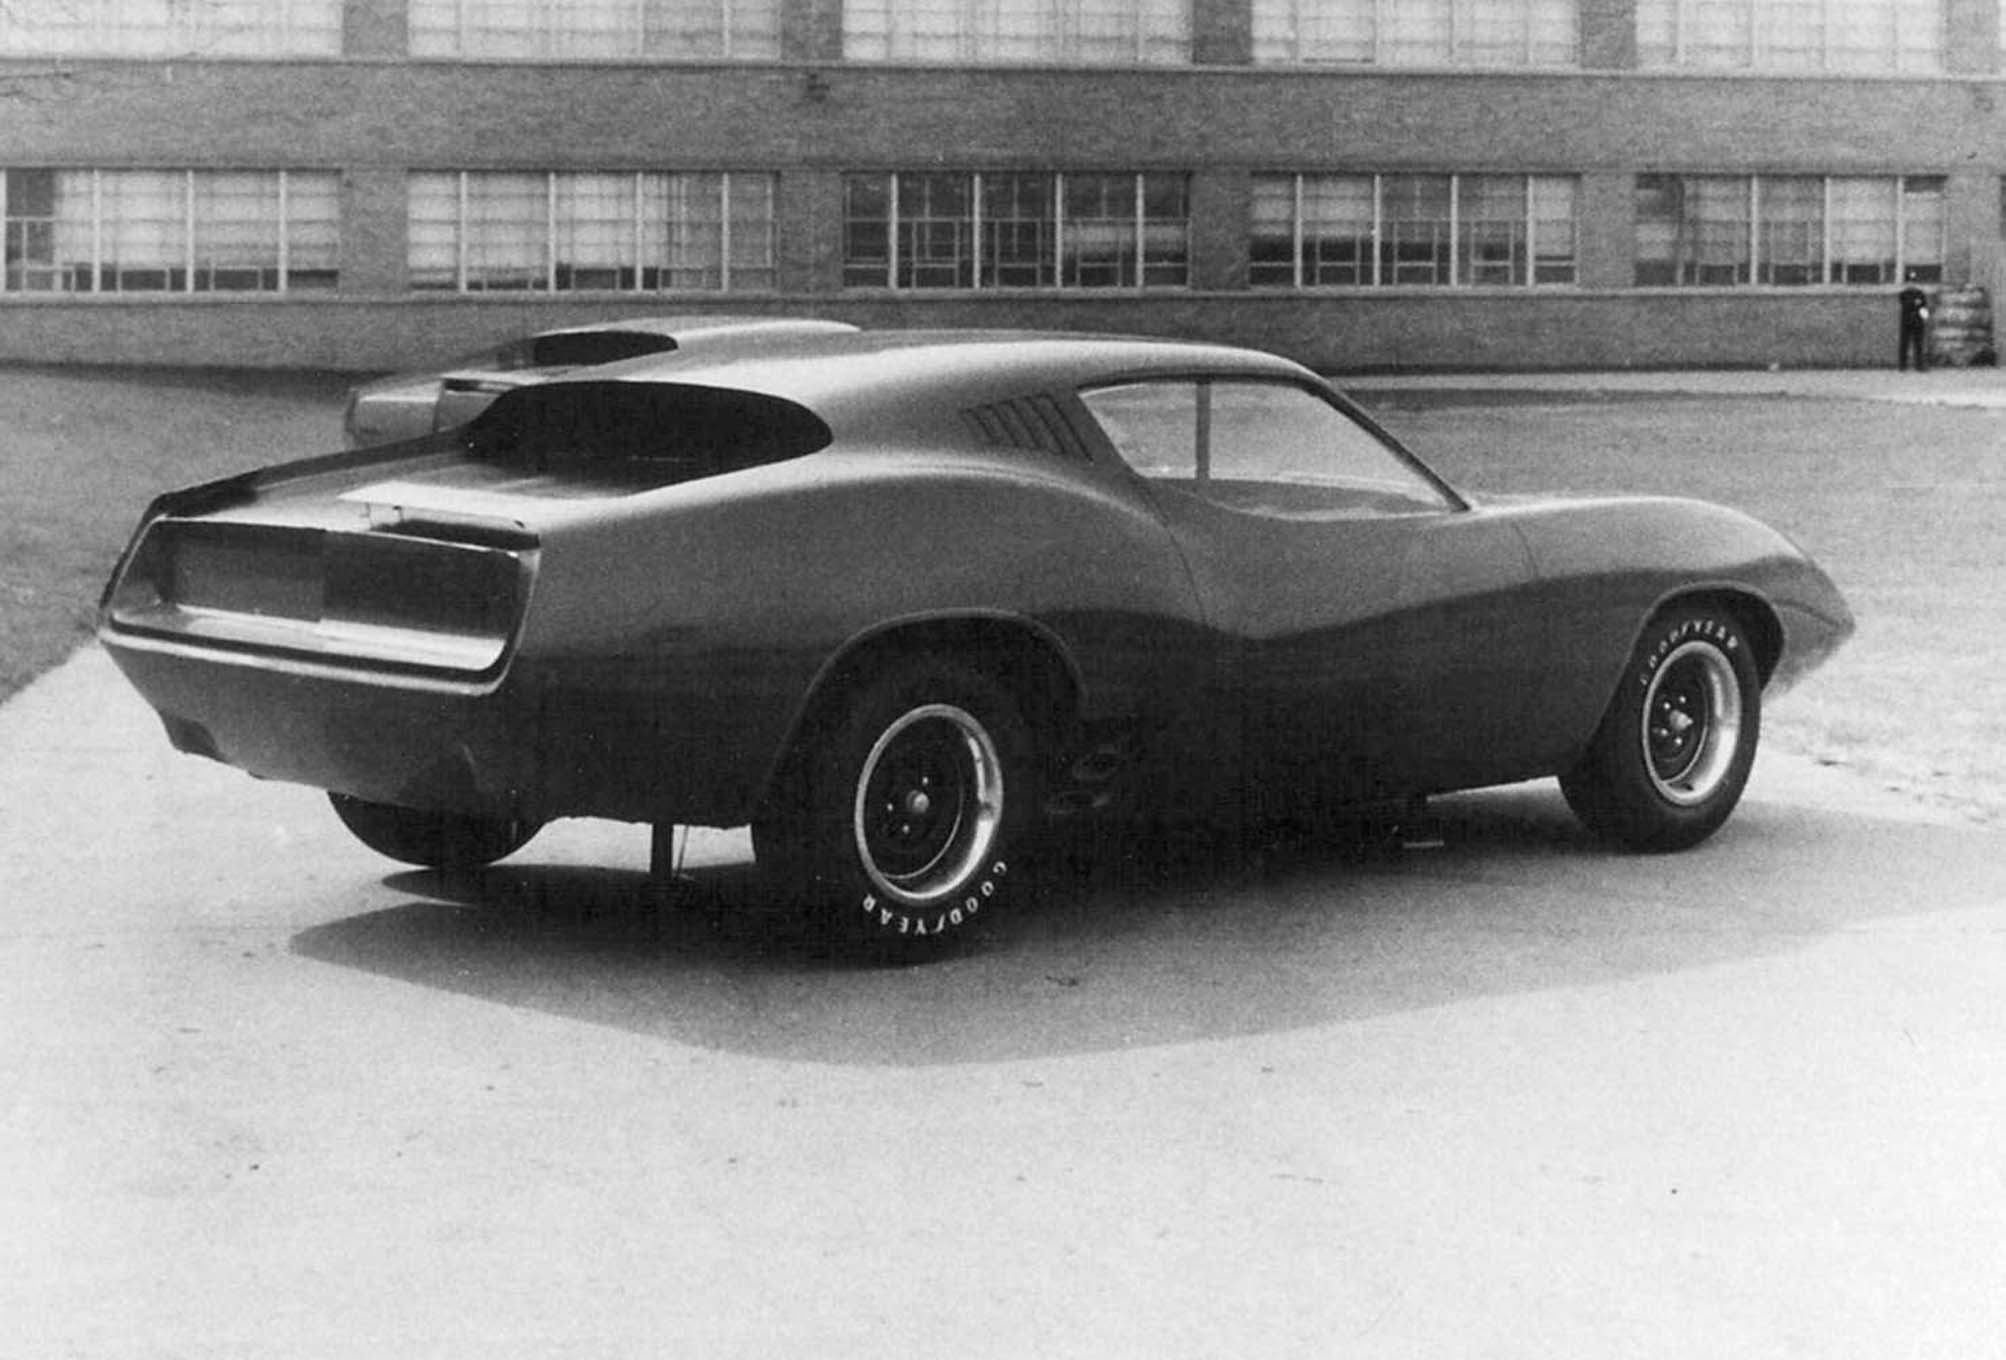 Another never-before-seen image from the Chrysler design archives of the 1975 Plymouth Barracuda concept outdoors at the design center.